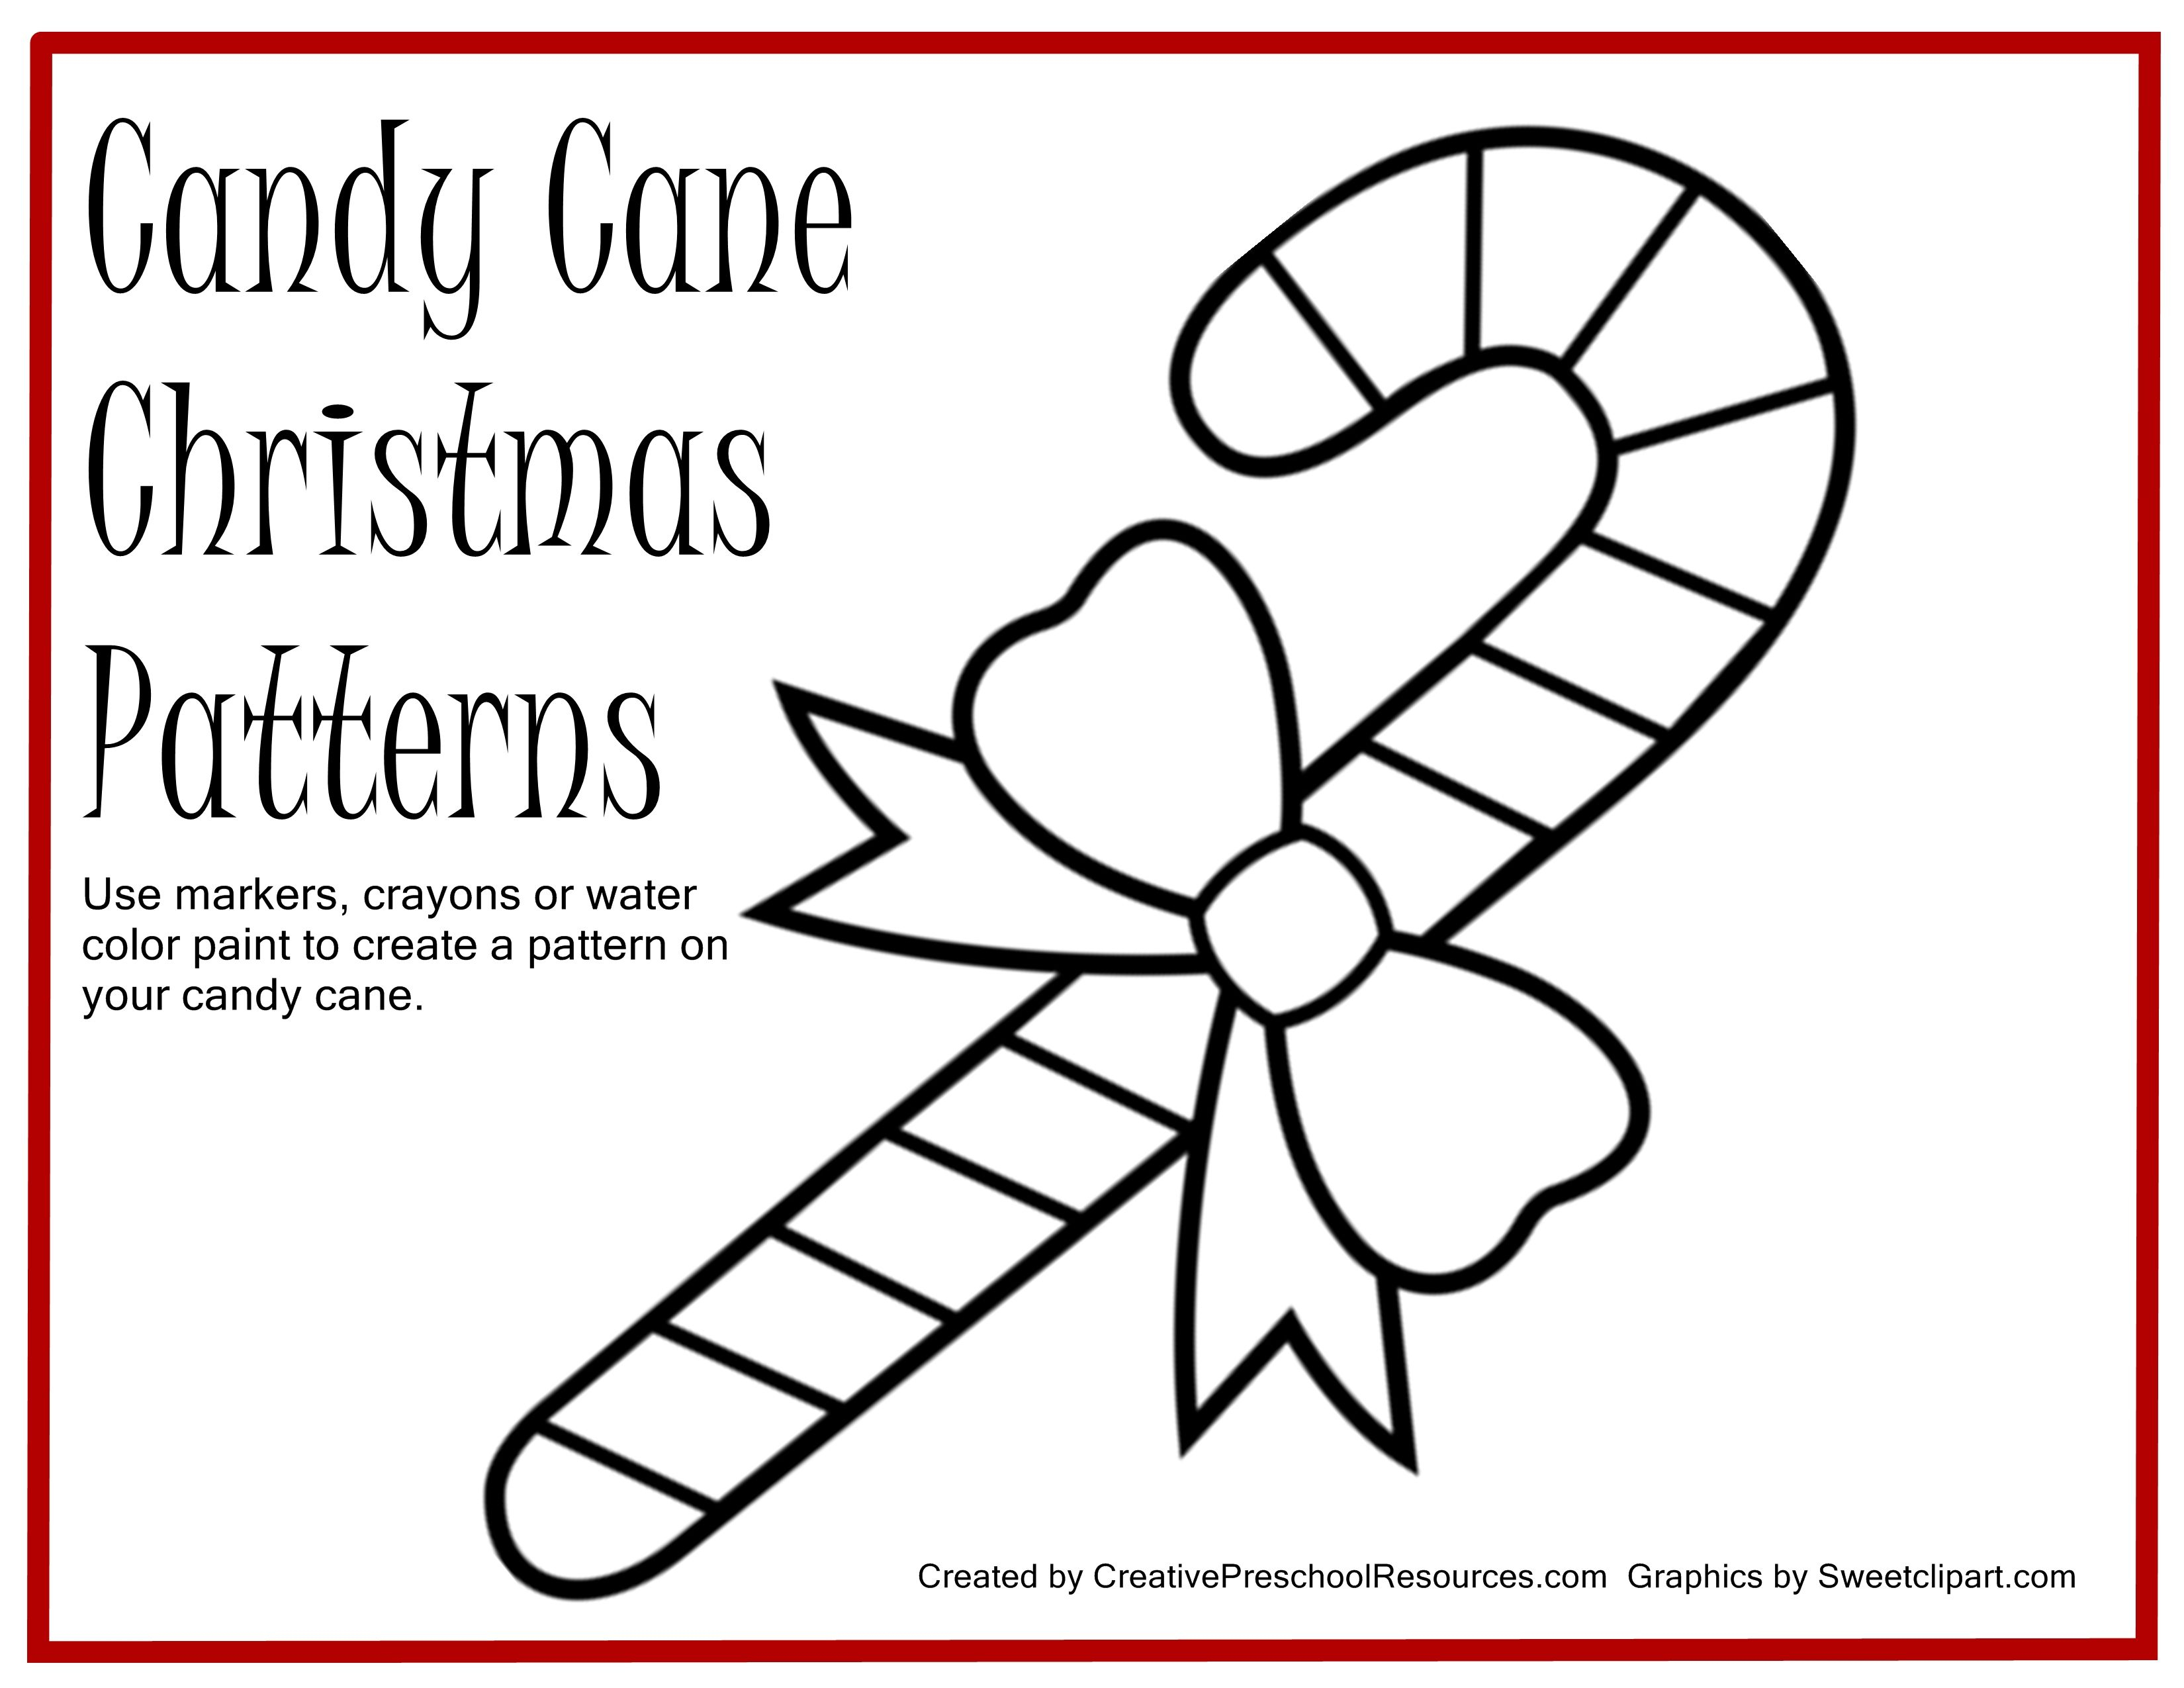 Free Printable For Painting Candy Cane Patterns   Preschool Ideas - Free Candy Cane Template Printable